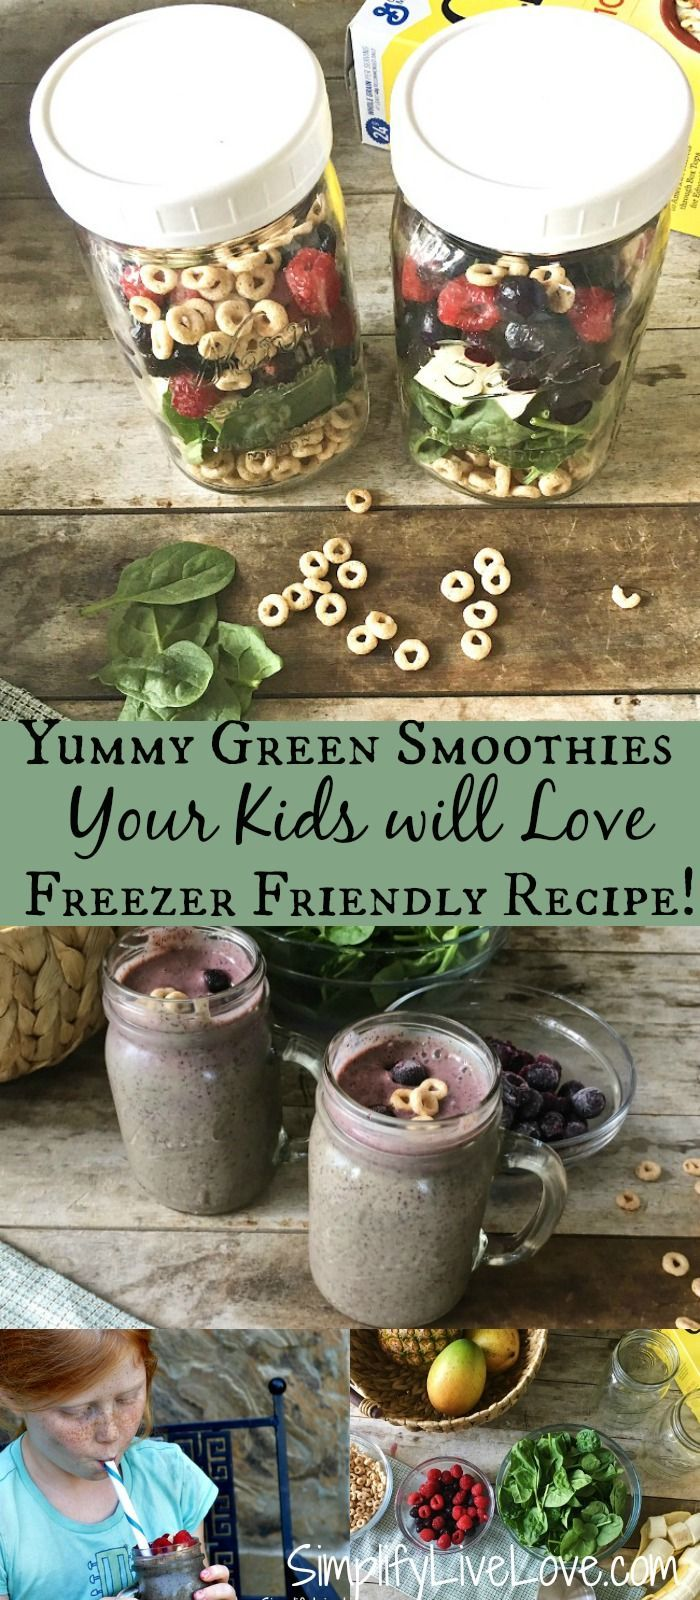 Yummy green smoothies your kids will love. Plus tips for how to freeze smoothies in glass jars. #ad #backtoschool